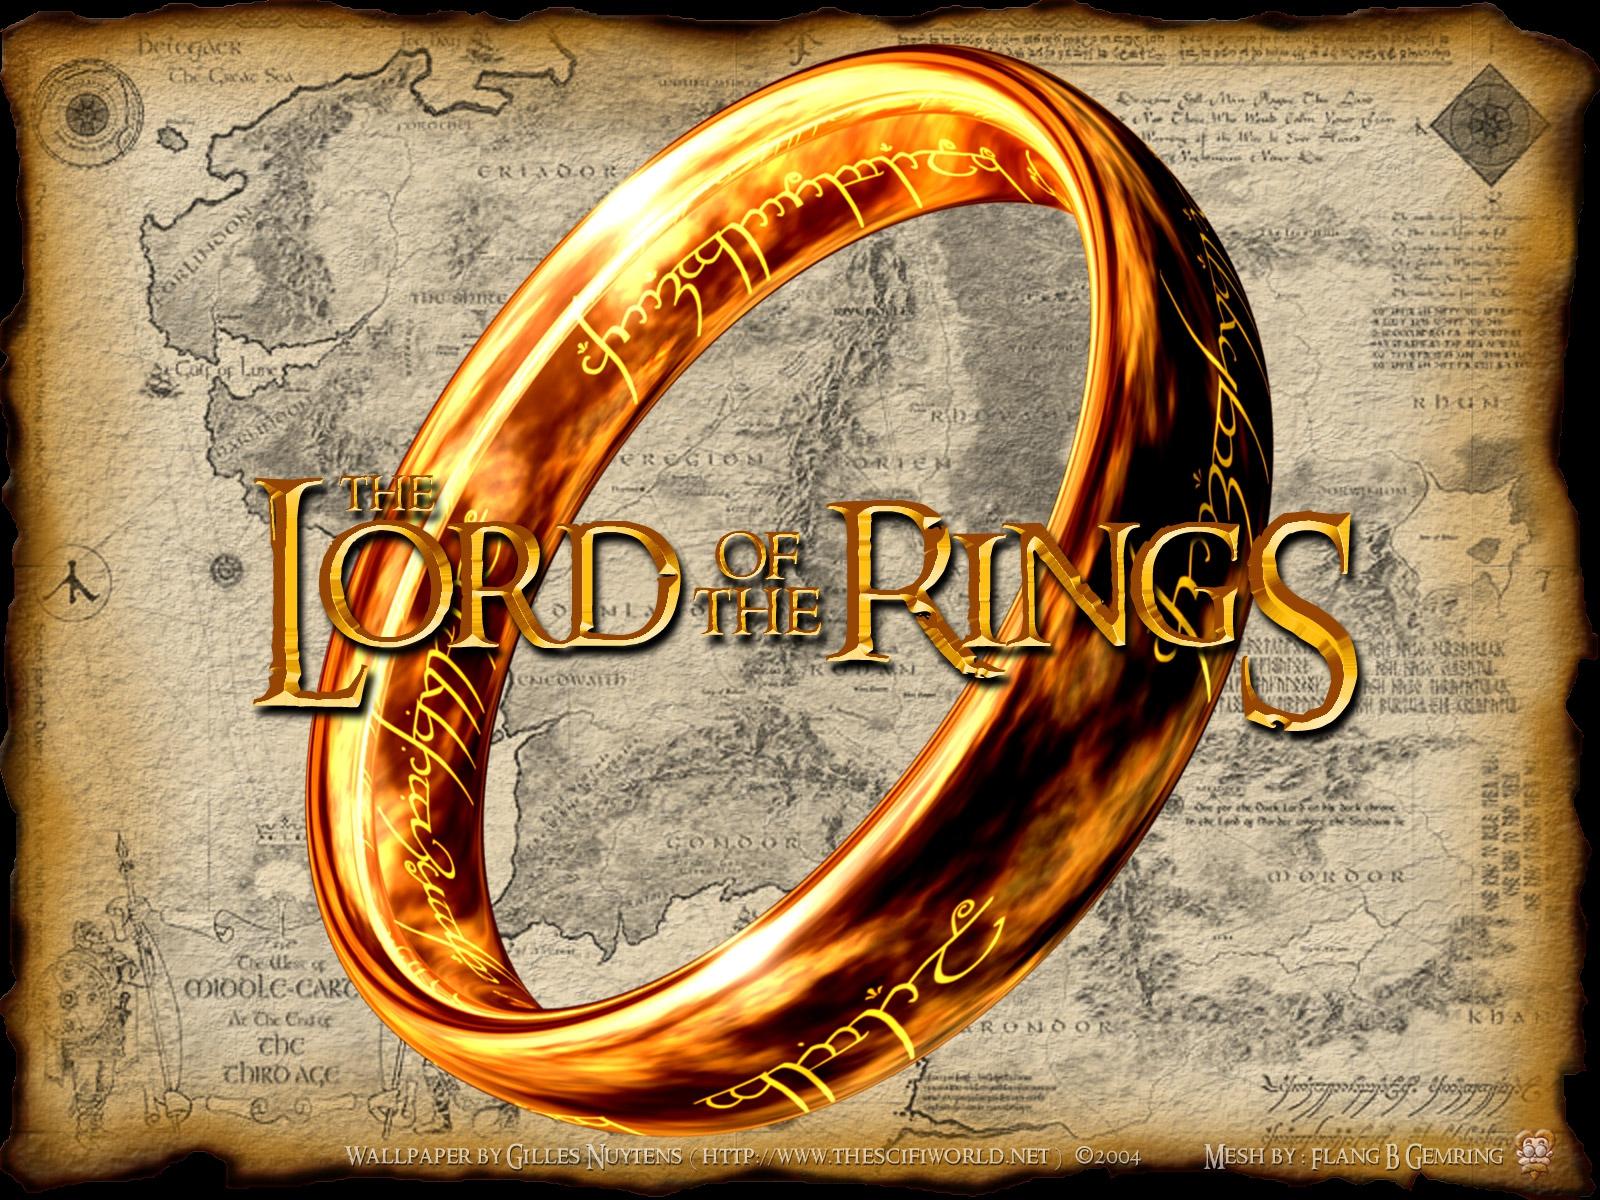 the lord of the rings 2001-03